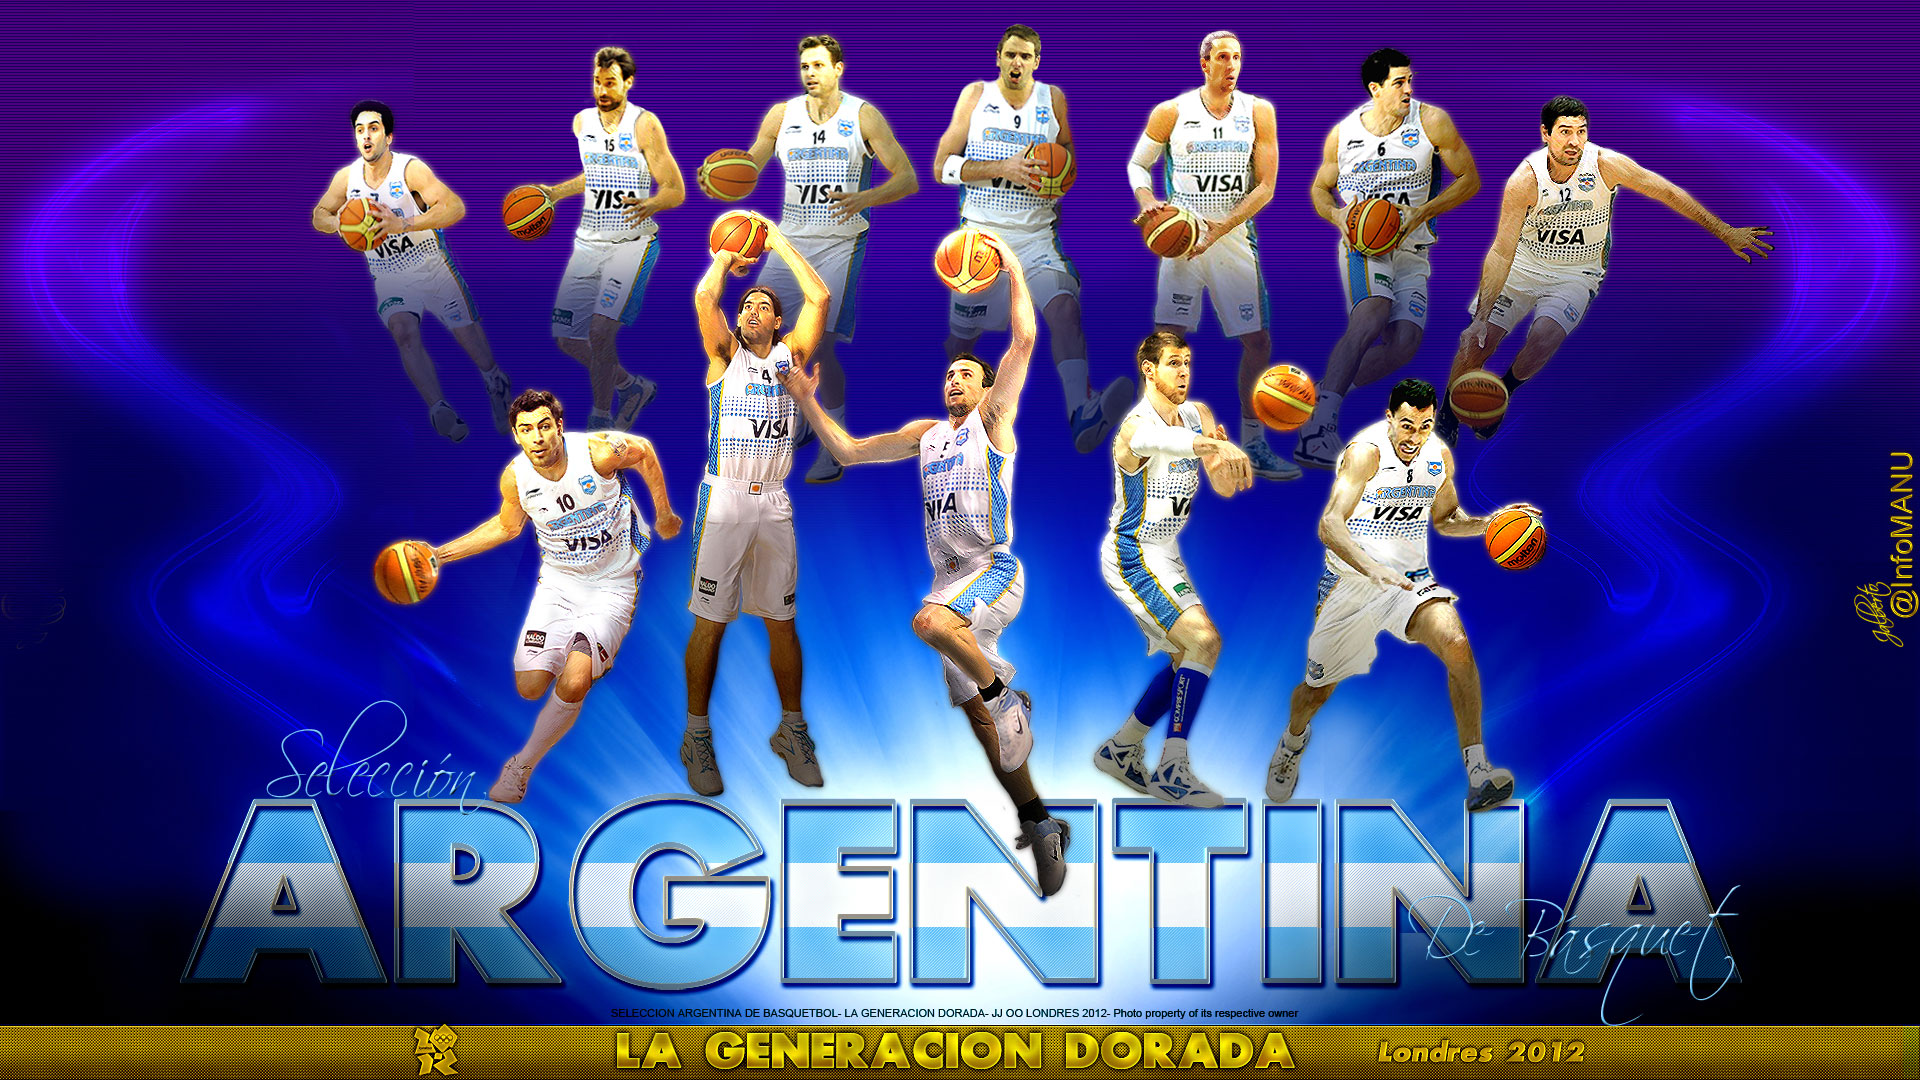 Argentina Basketball Team London 2012 1920x1080 Wallpaper